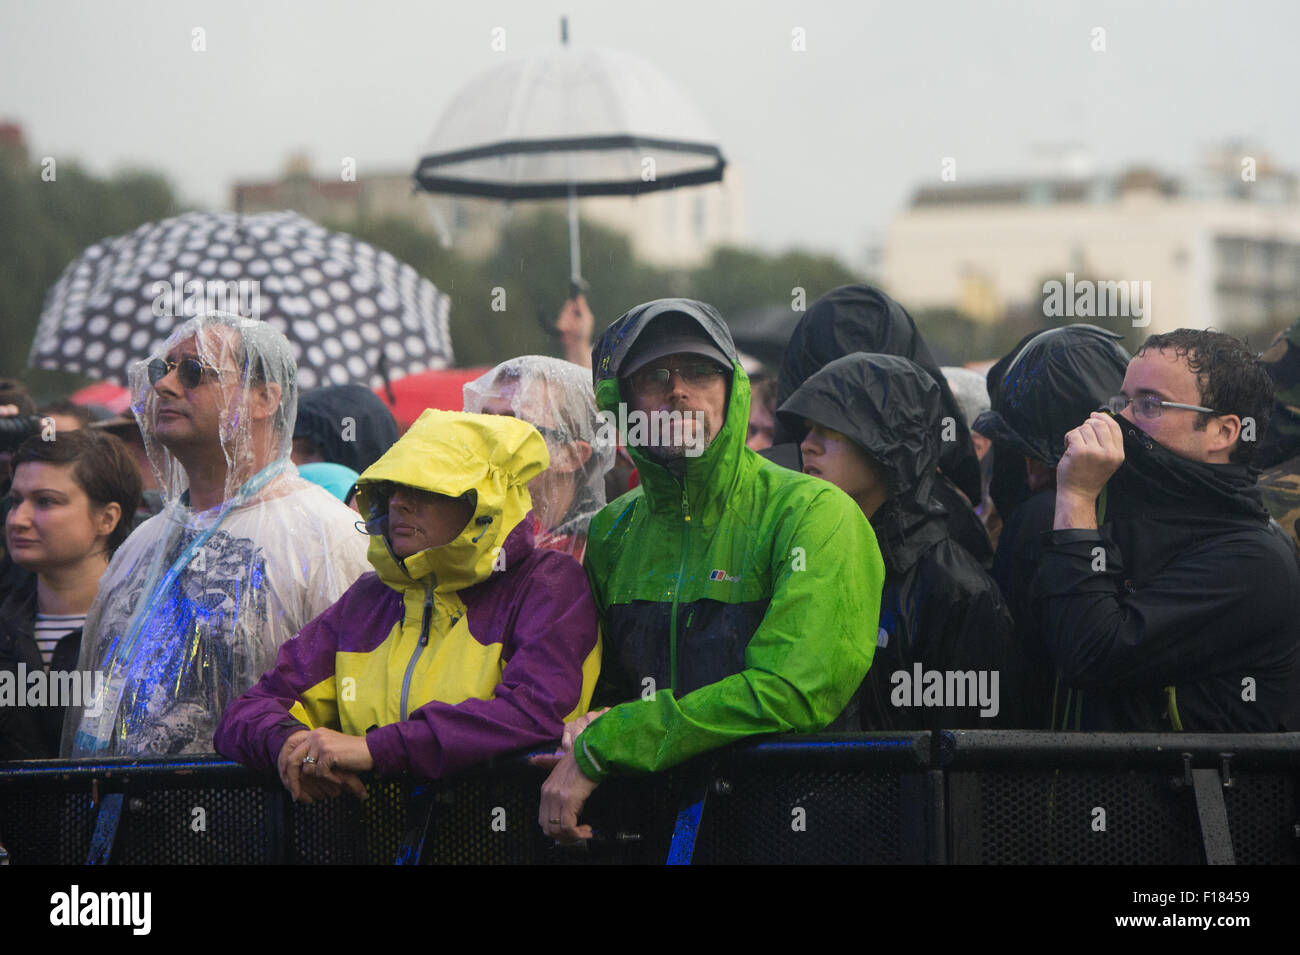 Portsmouth, UK. 29th August 2015. Victorious Festival - Saturday. The crowd shelter from the rain with waterproofs, - Stock Image